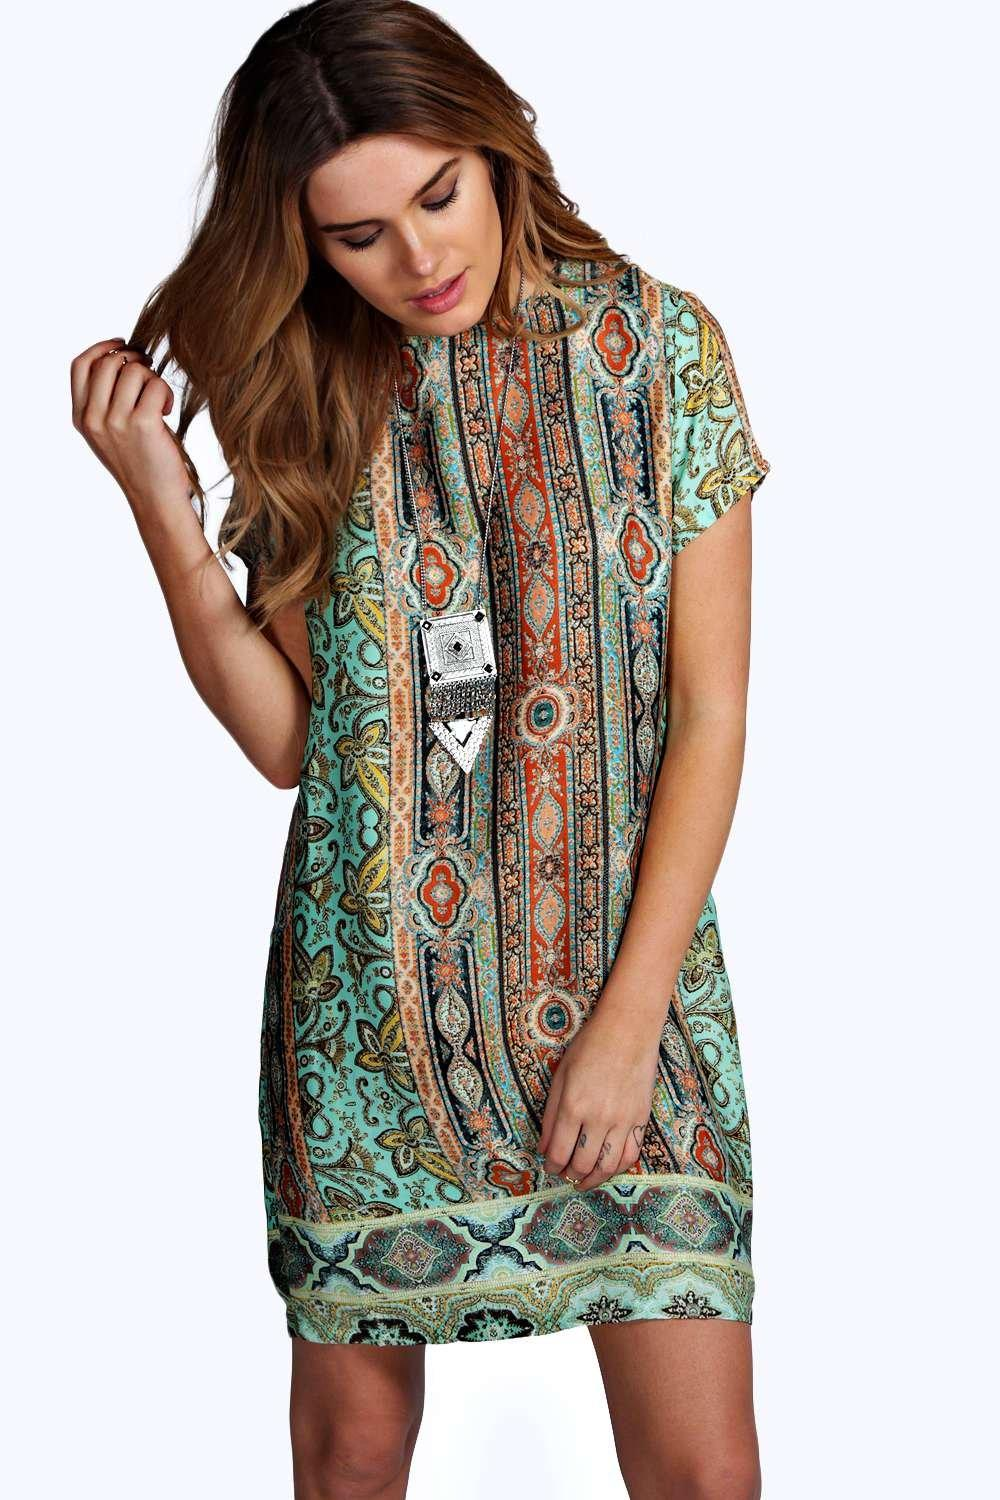 Iris Panelled Paisley Print Cap Sleeve Shift Dress at boohoo.com